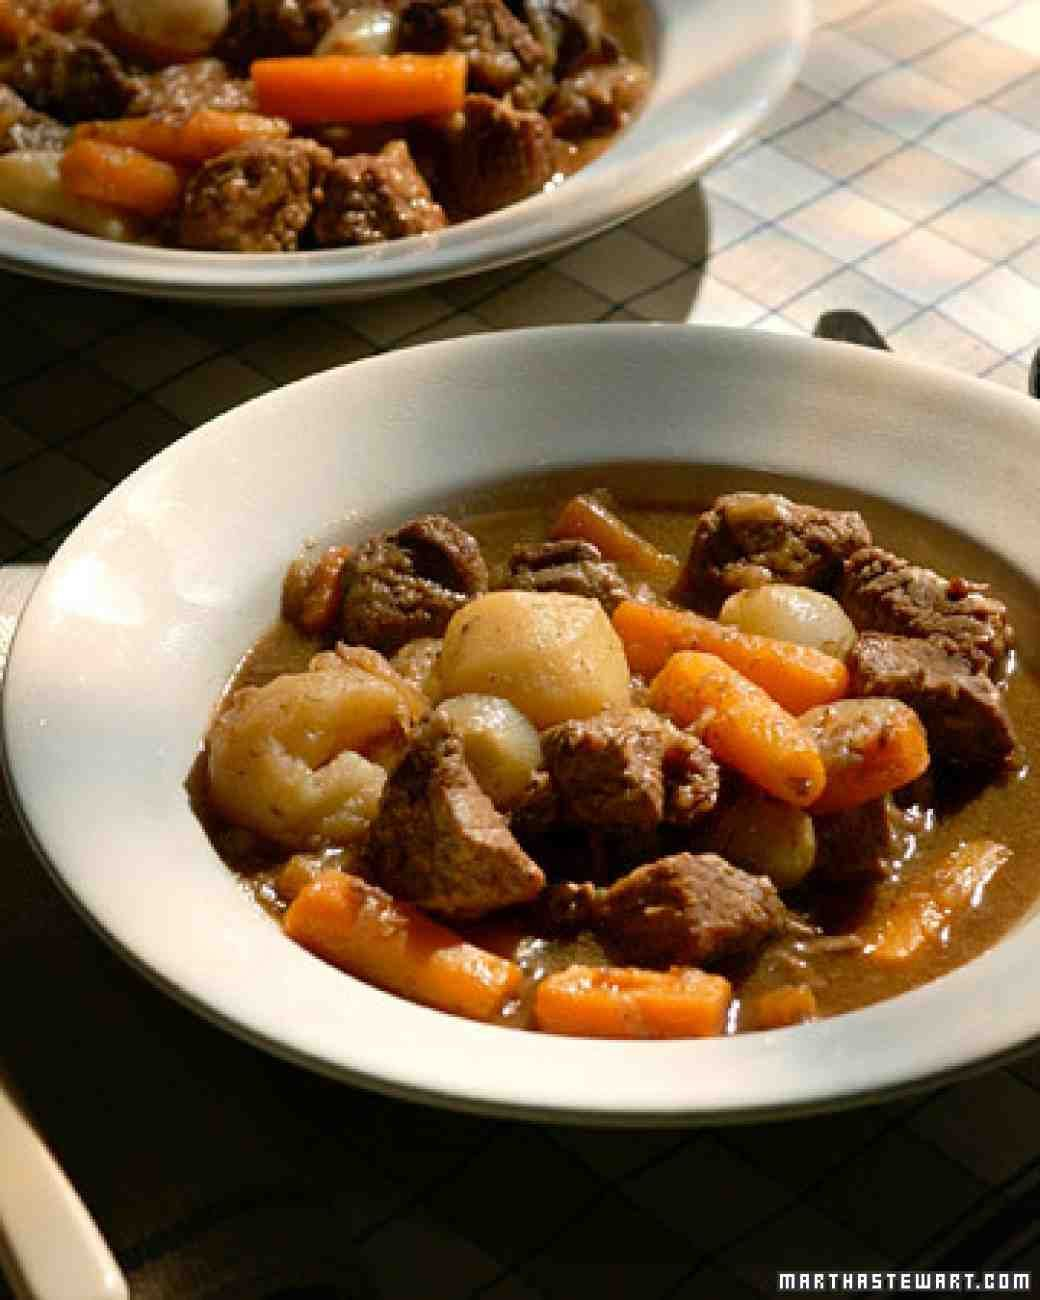 Old Fashioned Beef Stew Recipe Beef Stew Recipe Old Fashioned Beef Stew Martha Stewart Beef Stew